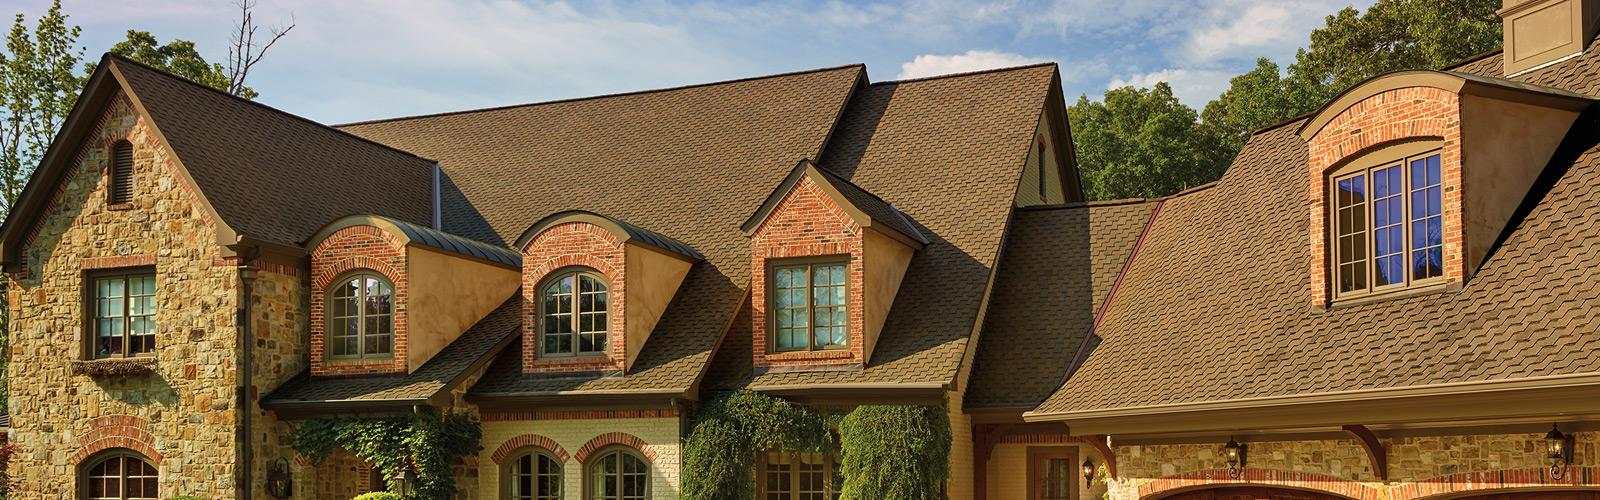 Home   Janiec Roofing